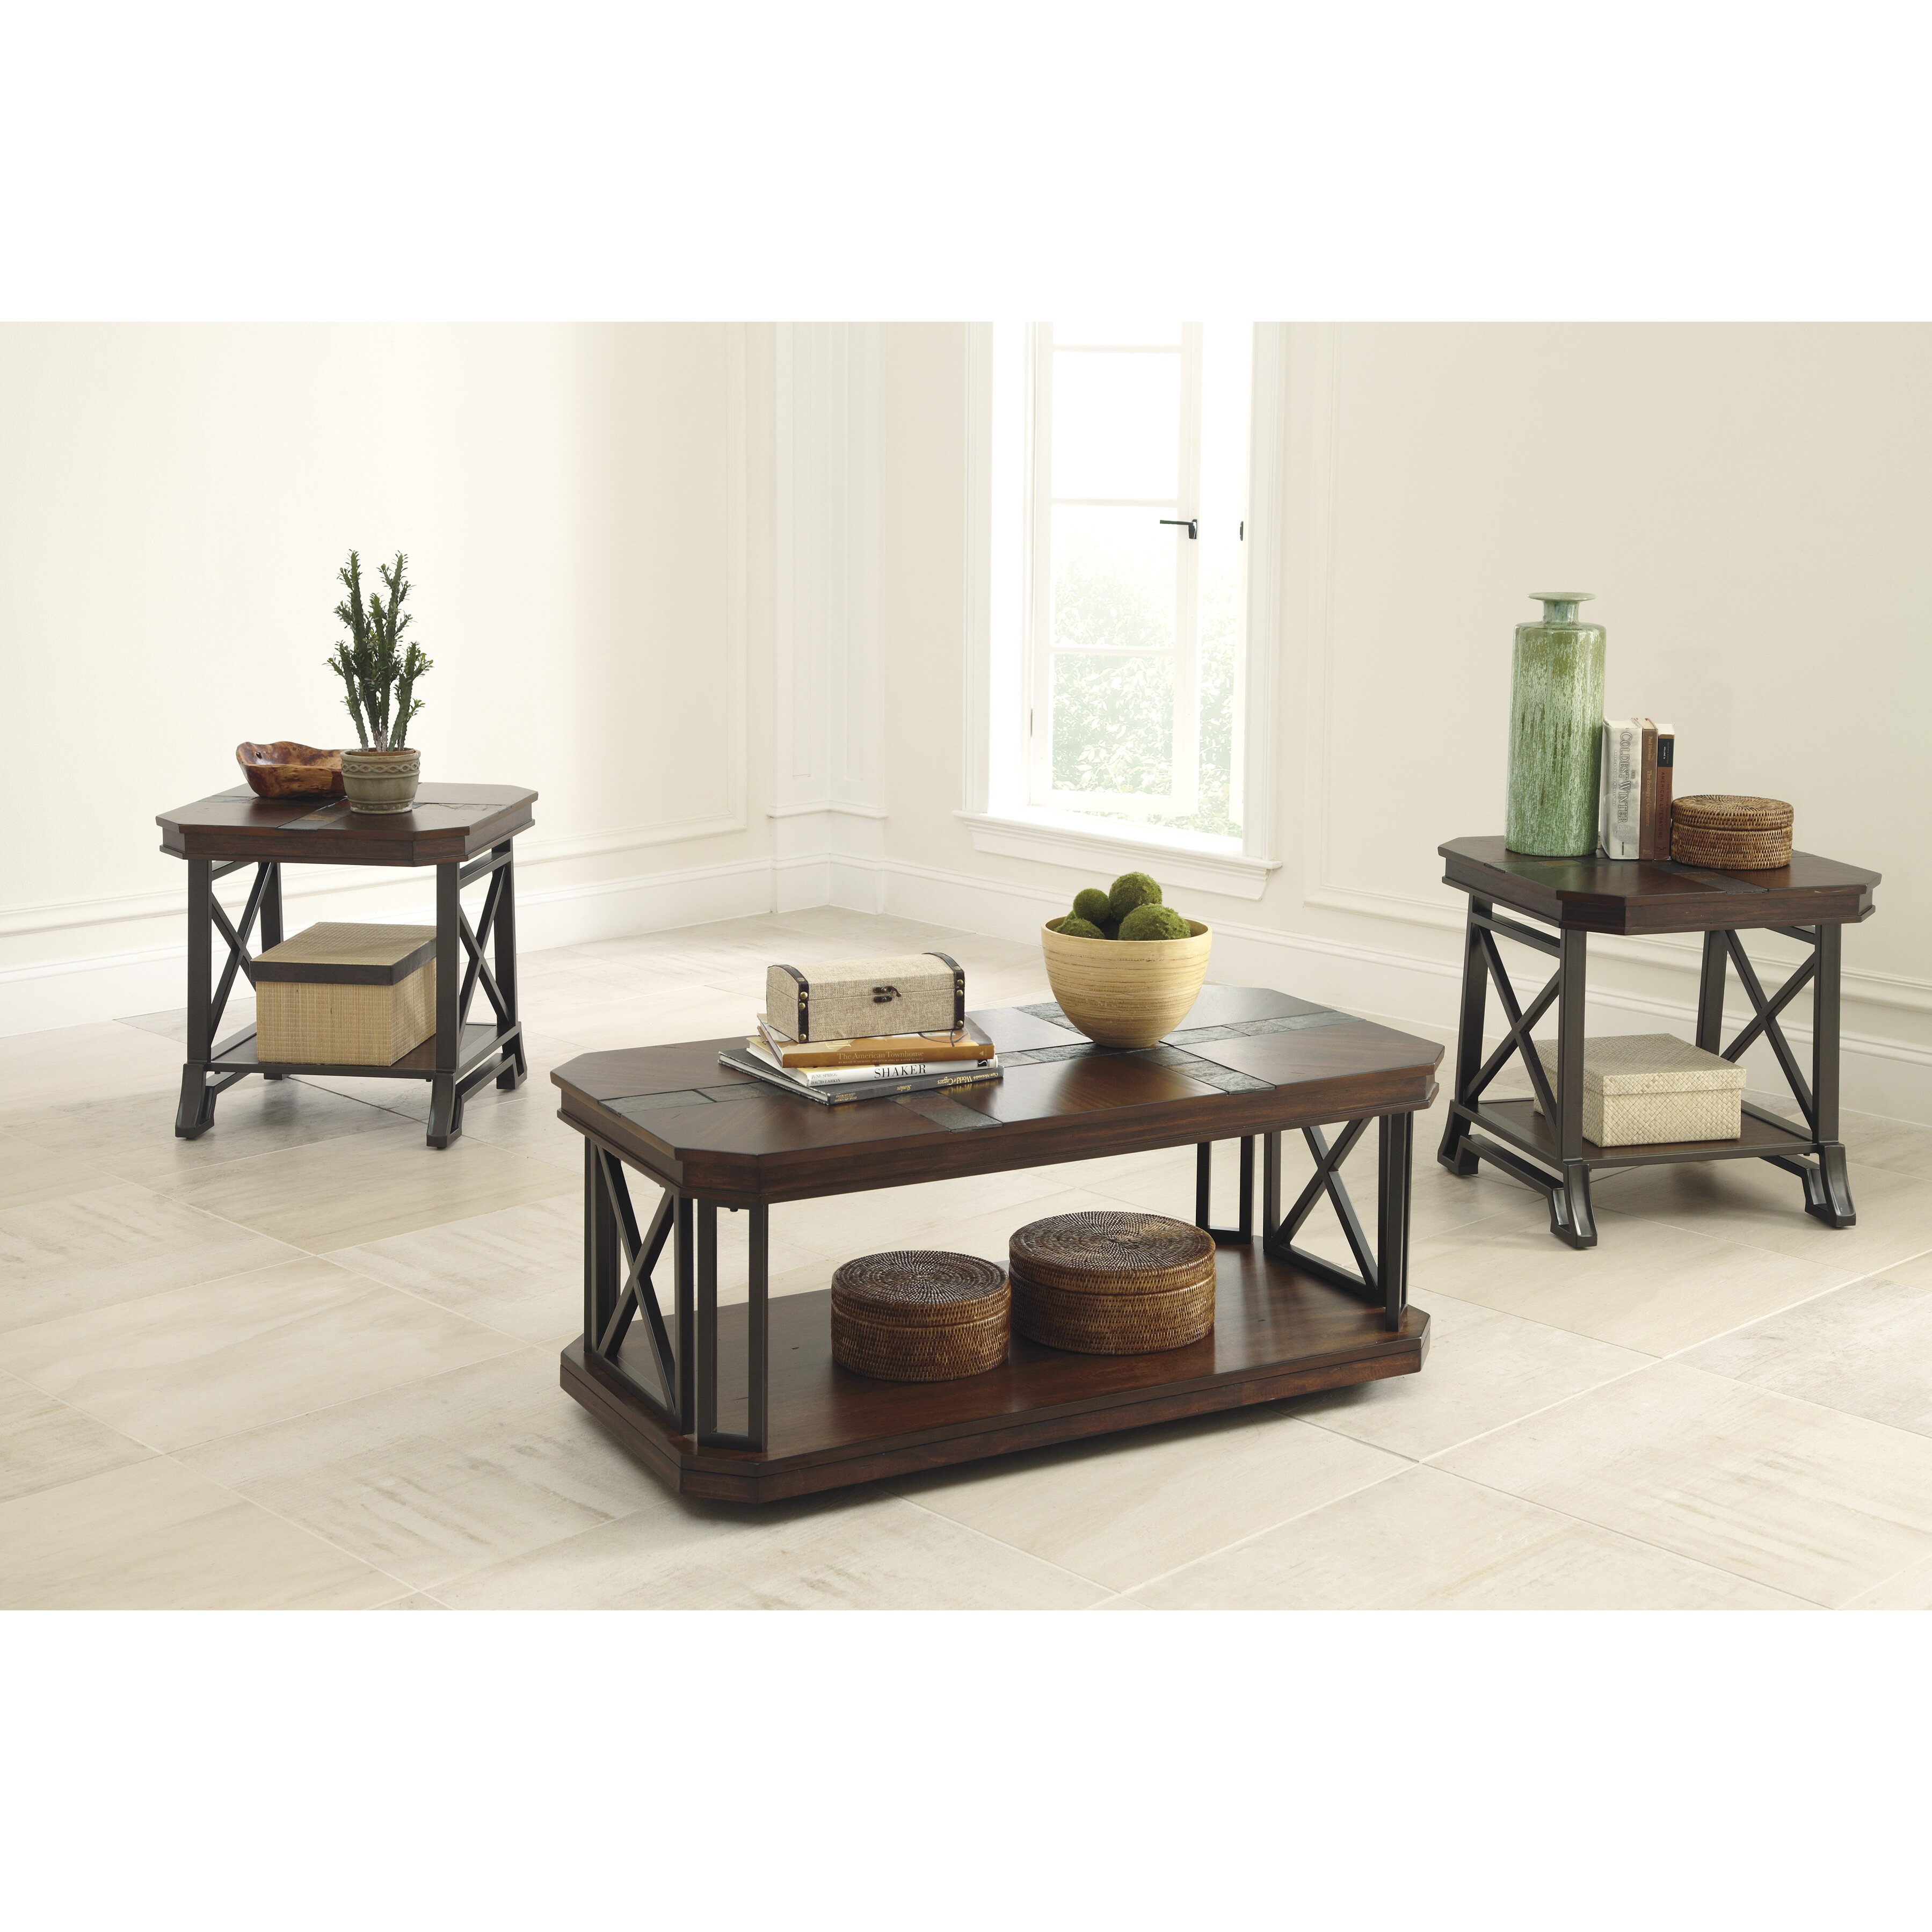 Ashley Mallacar Piece Coffee Table Set In Black T: Signature Design By Ashley Vinasville 3 Piece Coffee Table